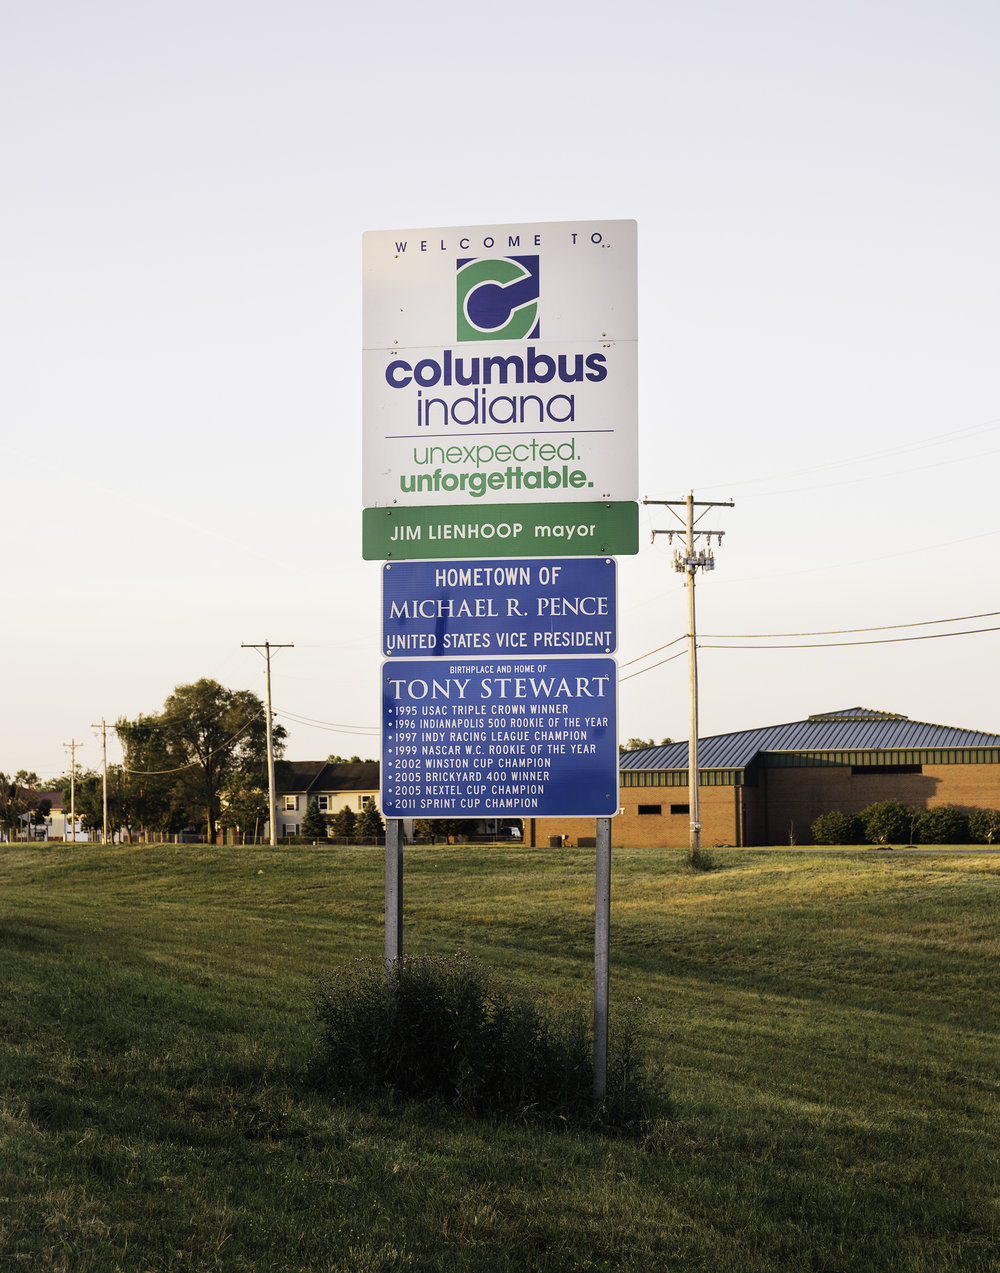 Columbus's New World  - Mention the city of Columbus and most will assume that you mean the Ohio metropolis, home to one of the largest universities in the US and with a population close to the seven-digit mark – not the Columbus located in the depths of southern IndianaMonocle EscapistSummer 2017Story by: Ed Stocker photos: (right) Columbus, home of Michael (as he's known here) Pence. (below) Aerial view of downtown Columbus.